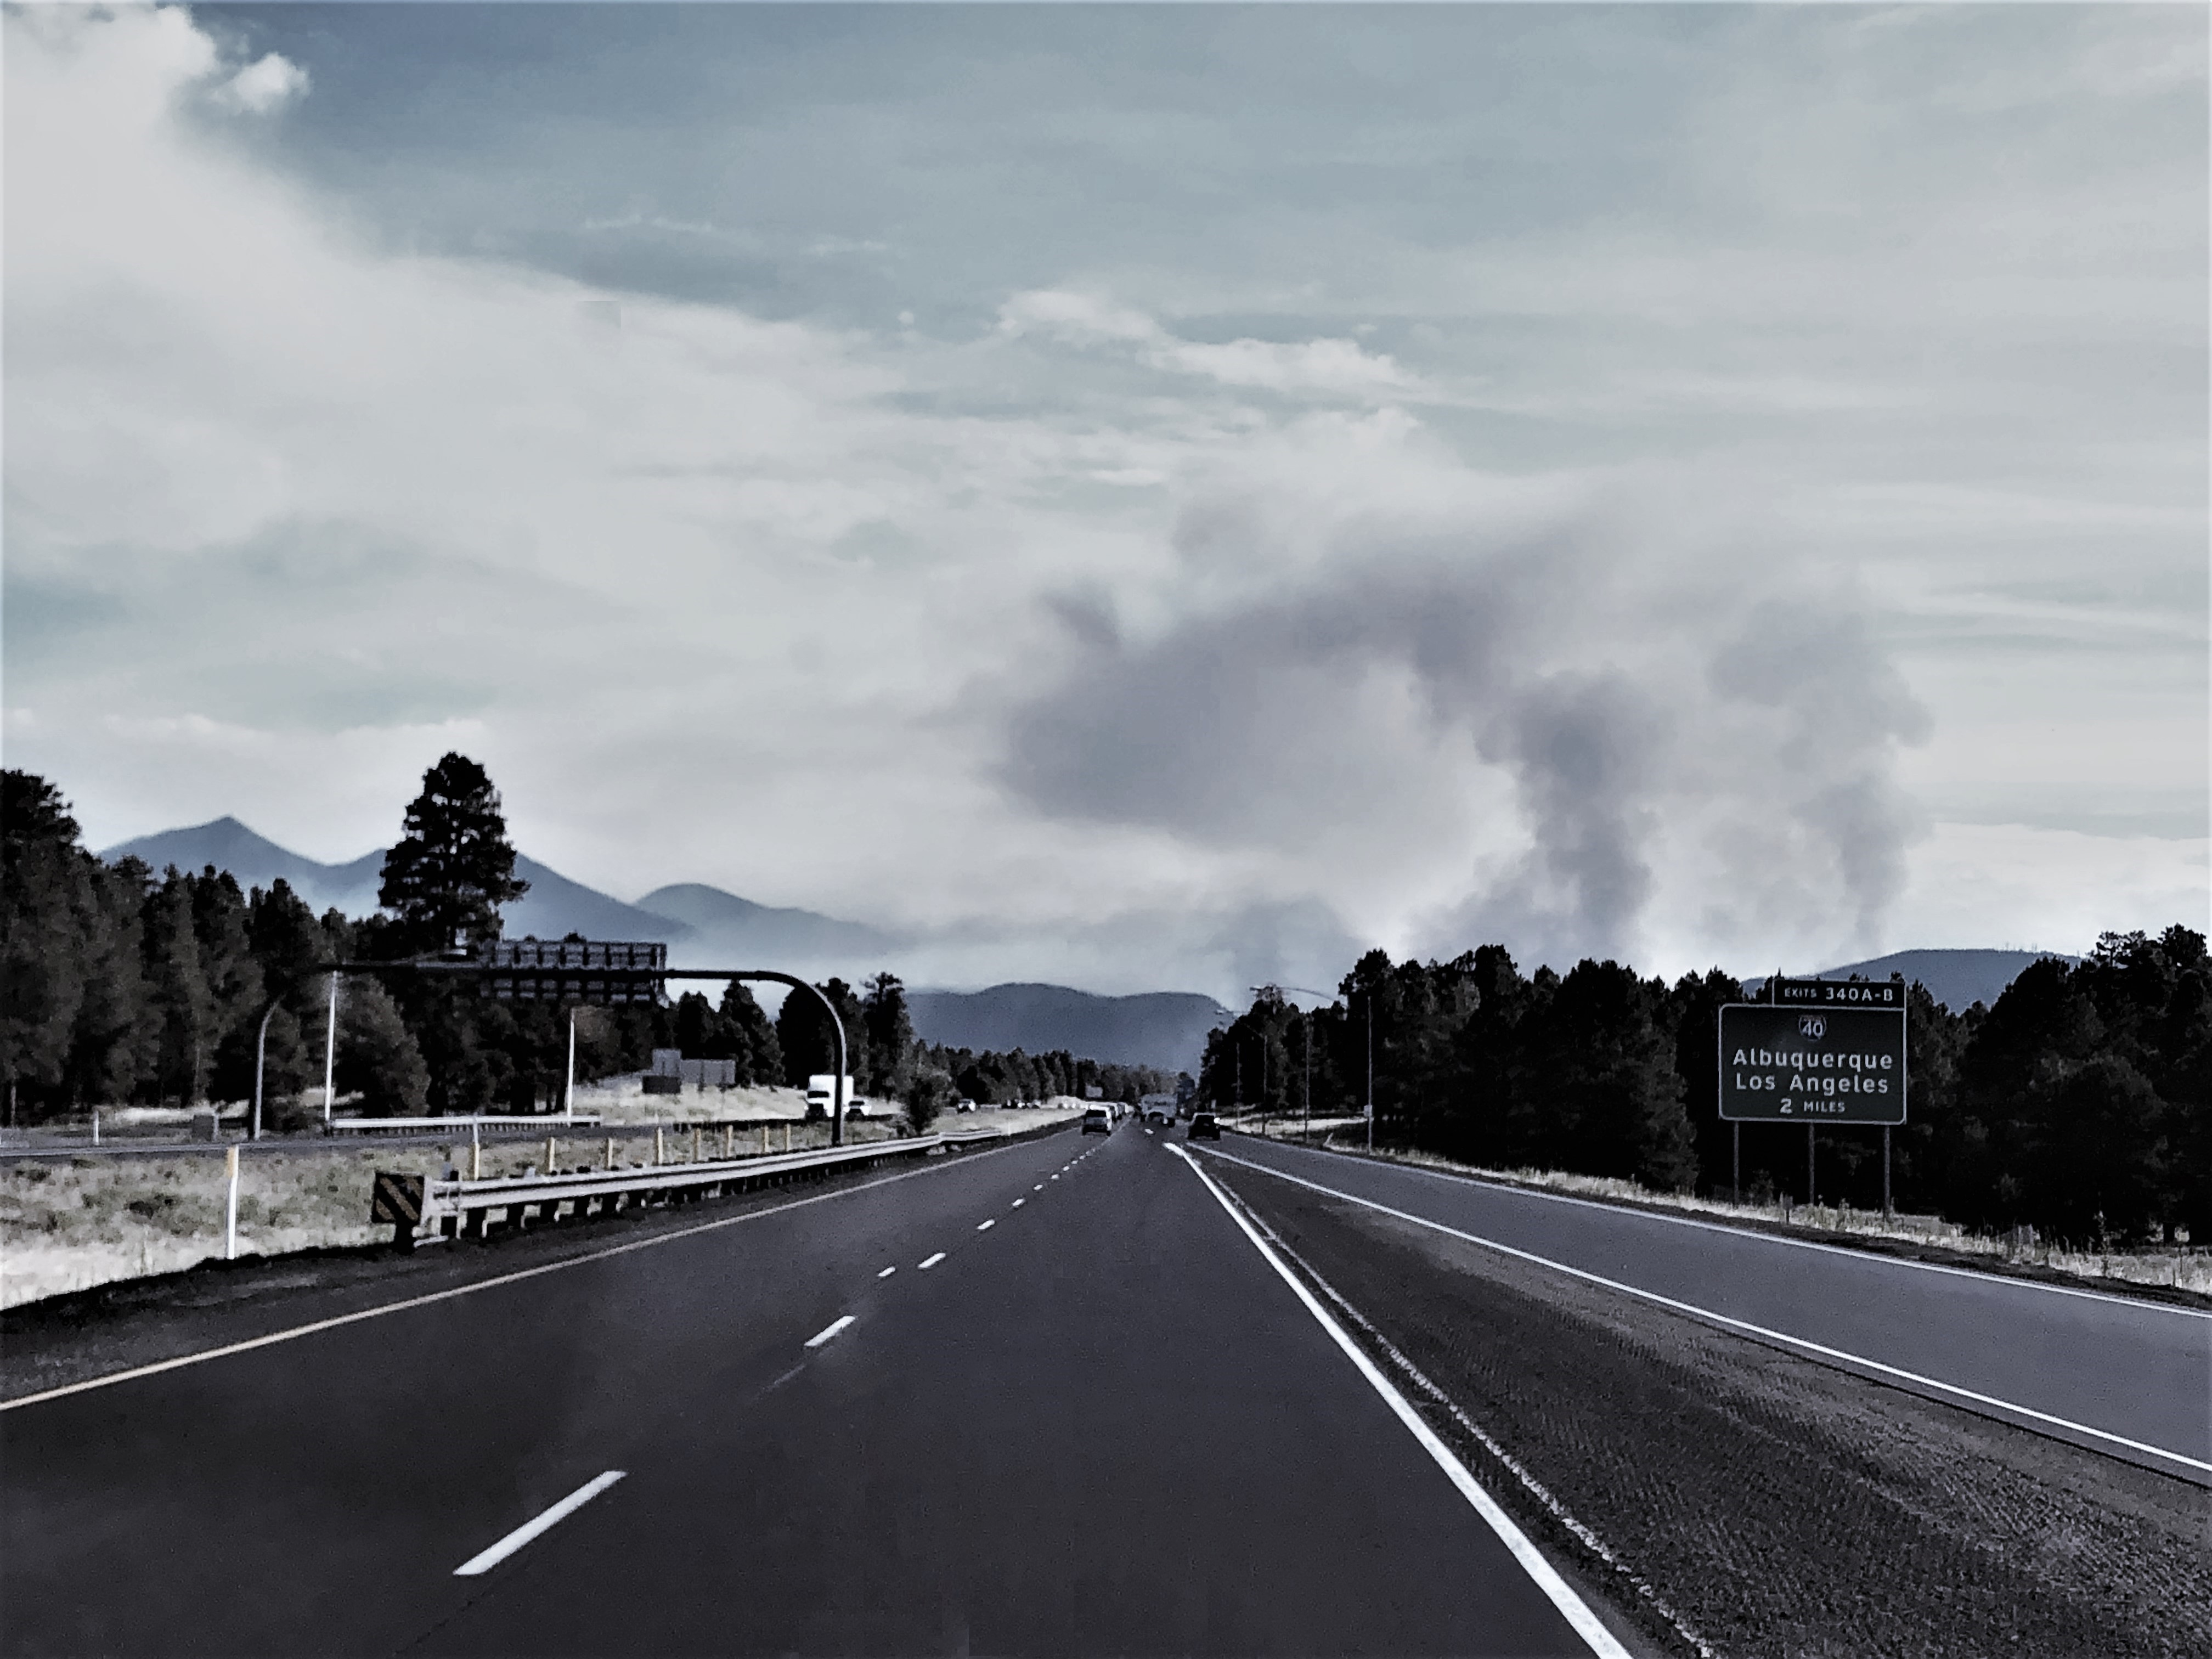 Plume of smoke from I-17